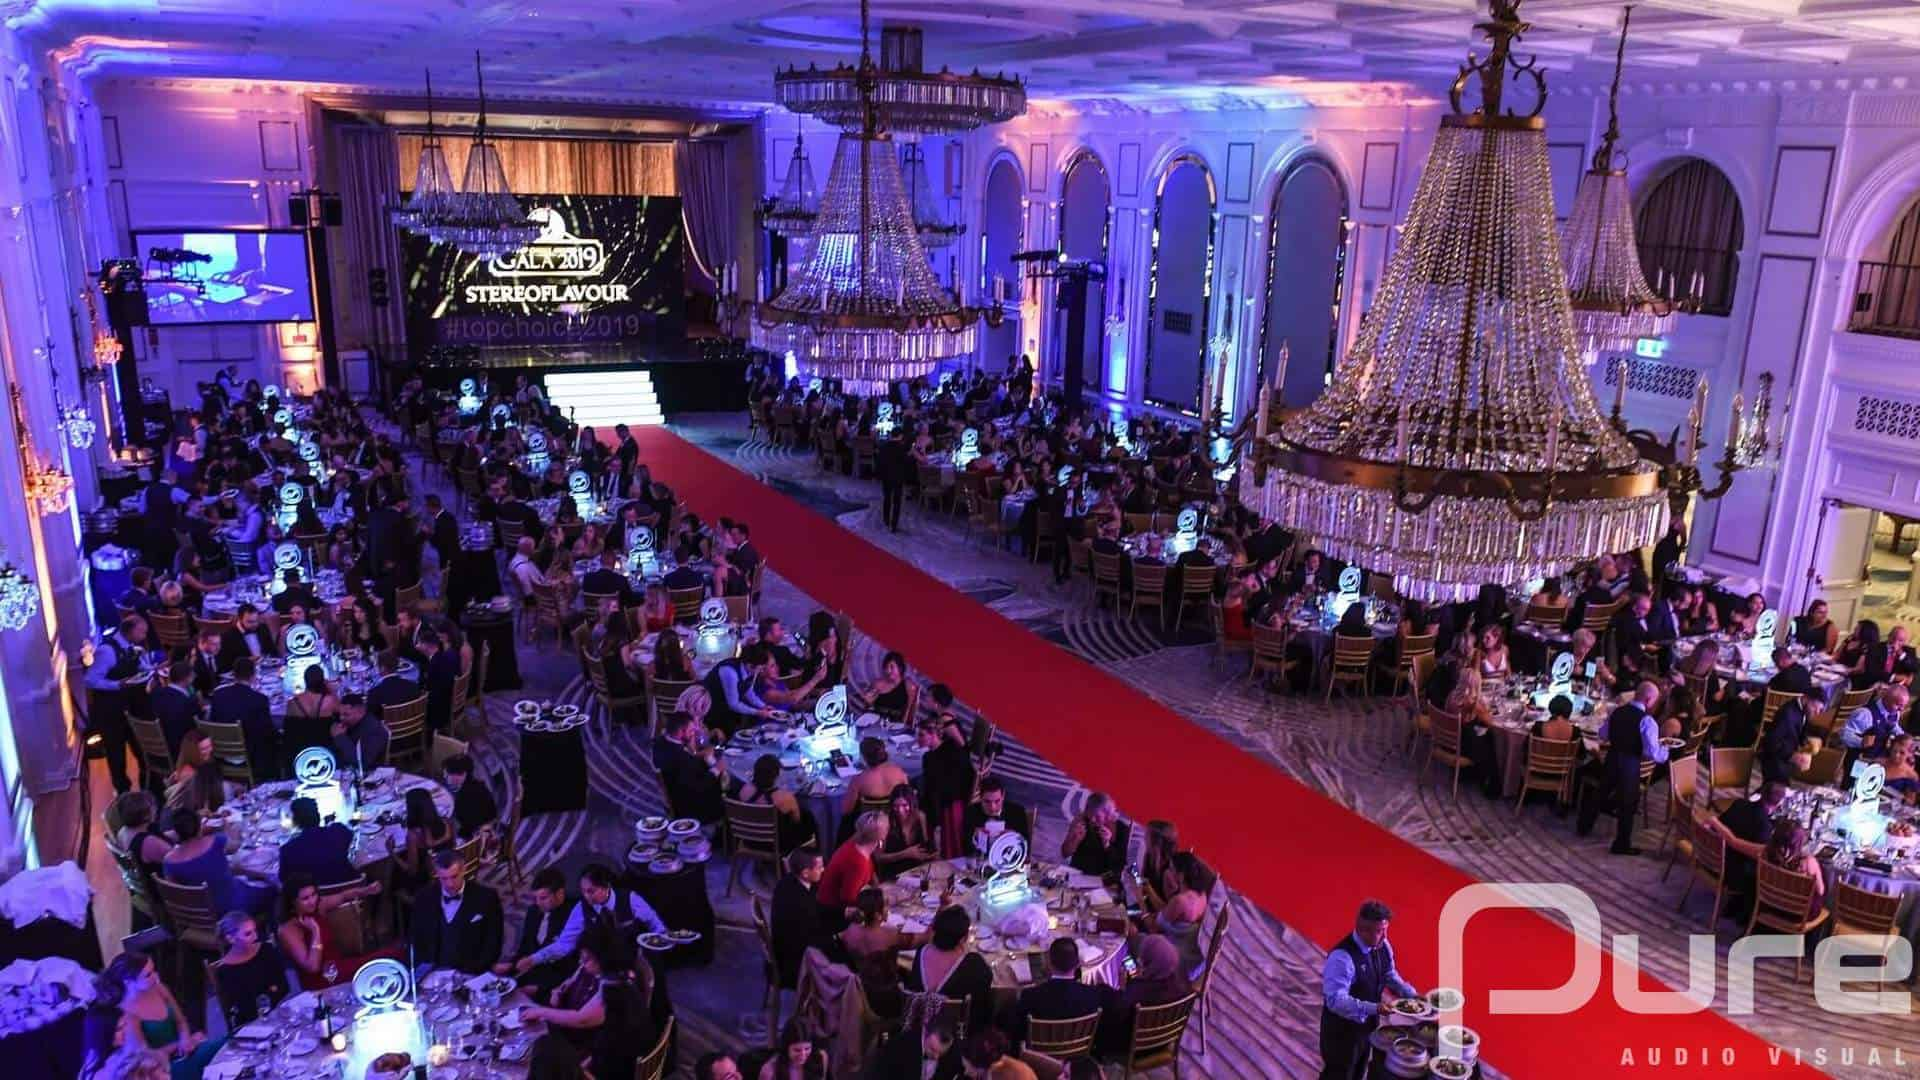 Corporate Awards Event. Audio Visual Services